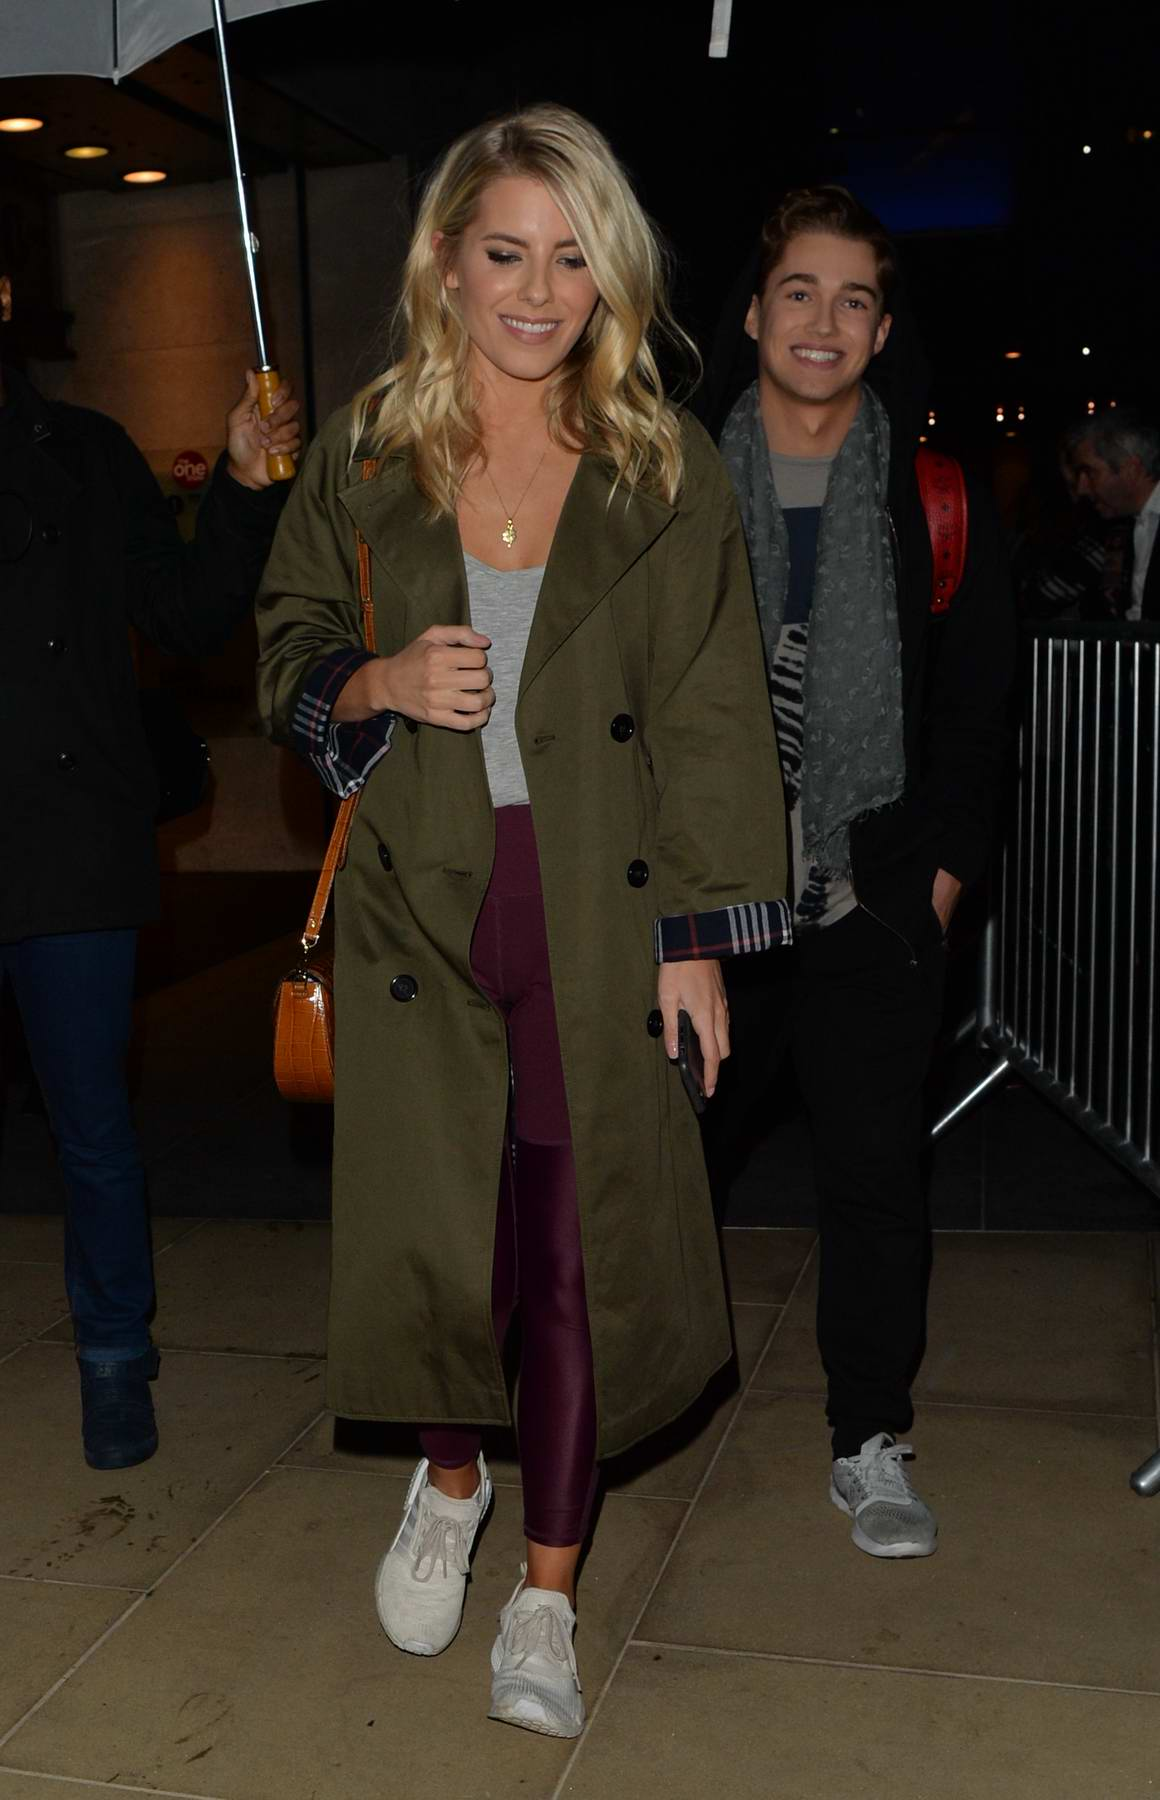 Mollie King makes an appearance on 'The One Show' in London